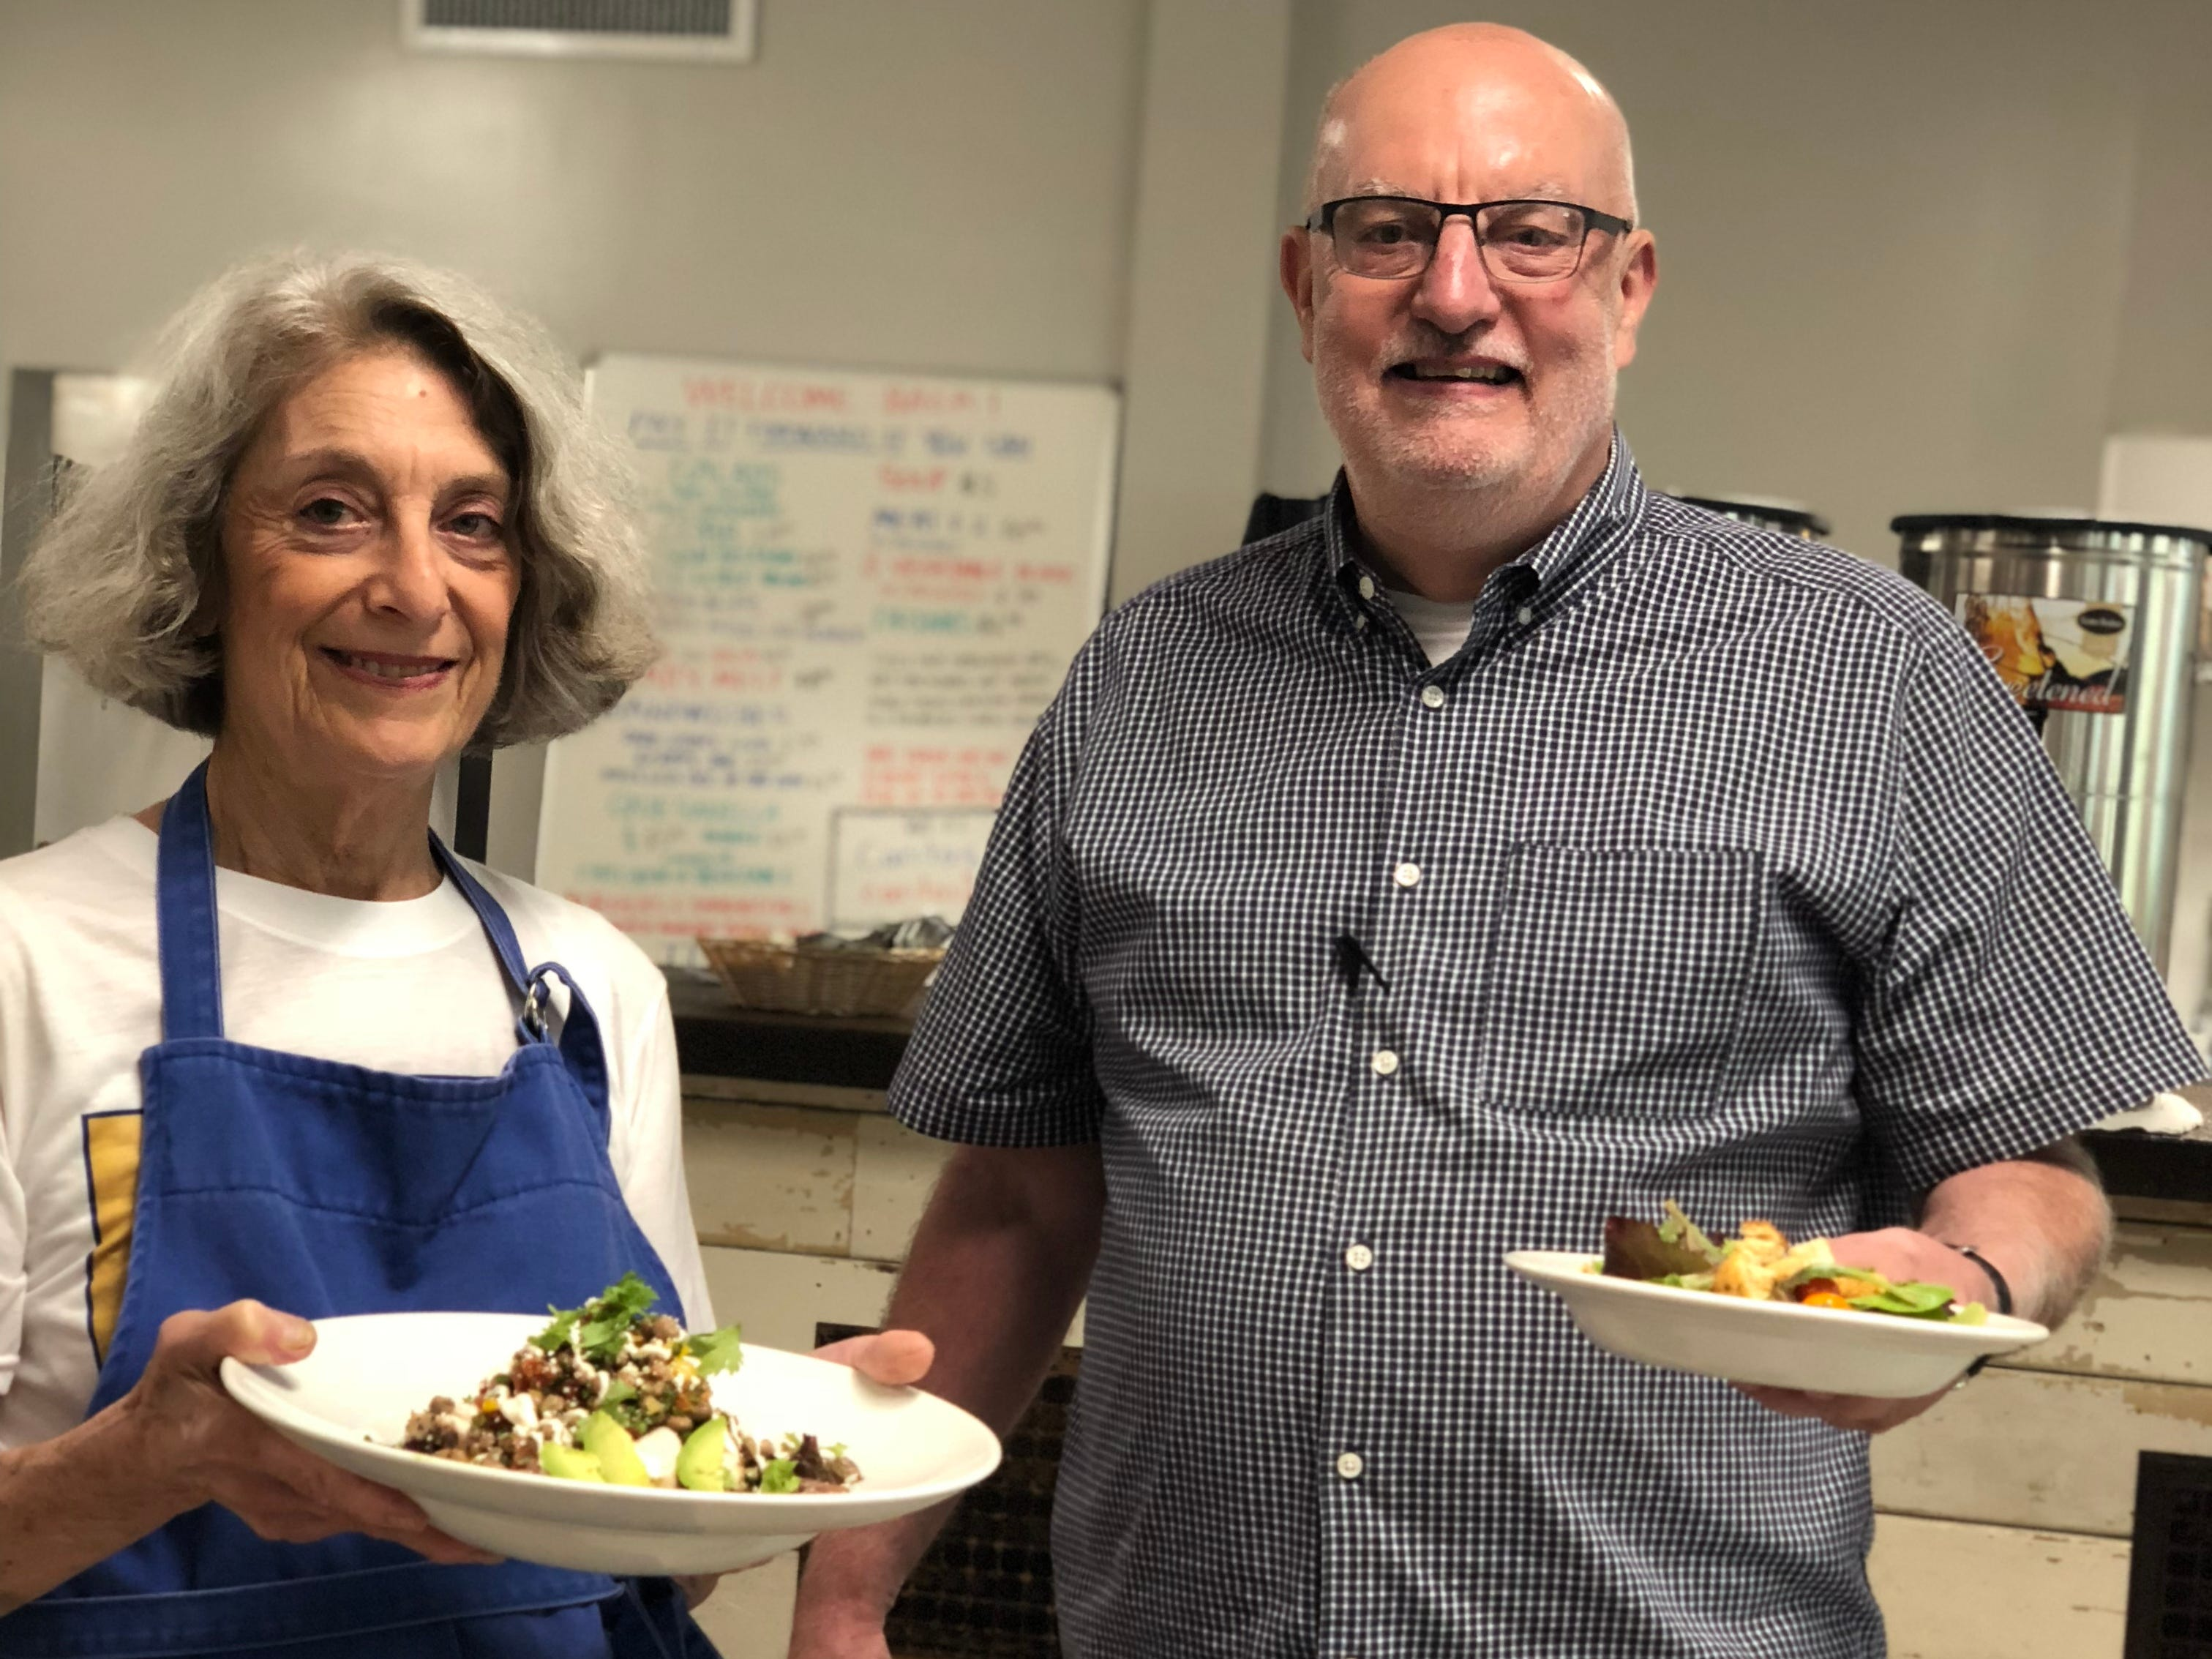 Caritas Village Executive Director Mac Edwards, right, and longtime volunteer Eddie Thomas, left, serve lunch with a smile on the cafe's re-opening day.